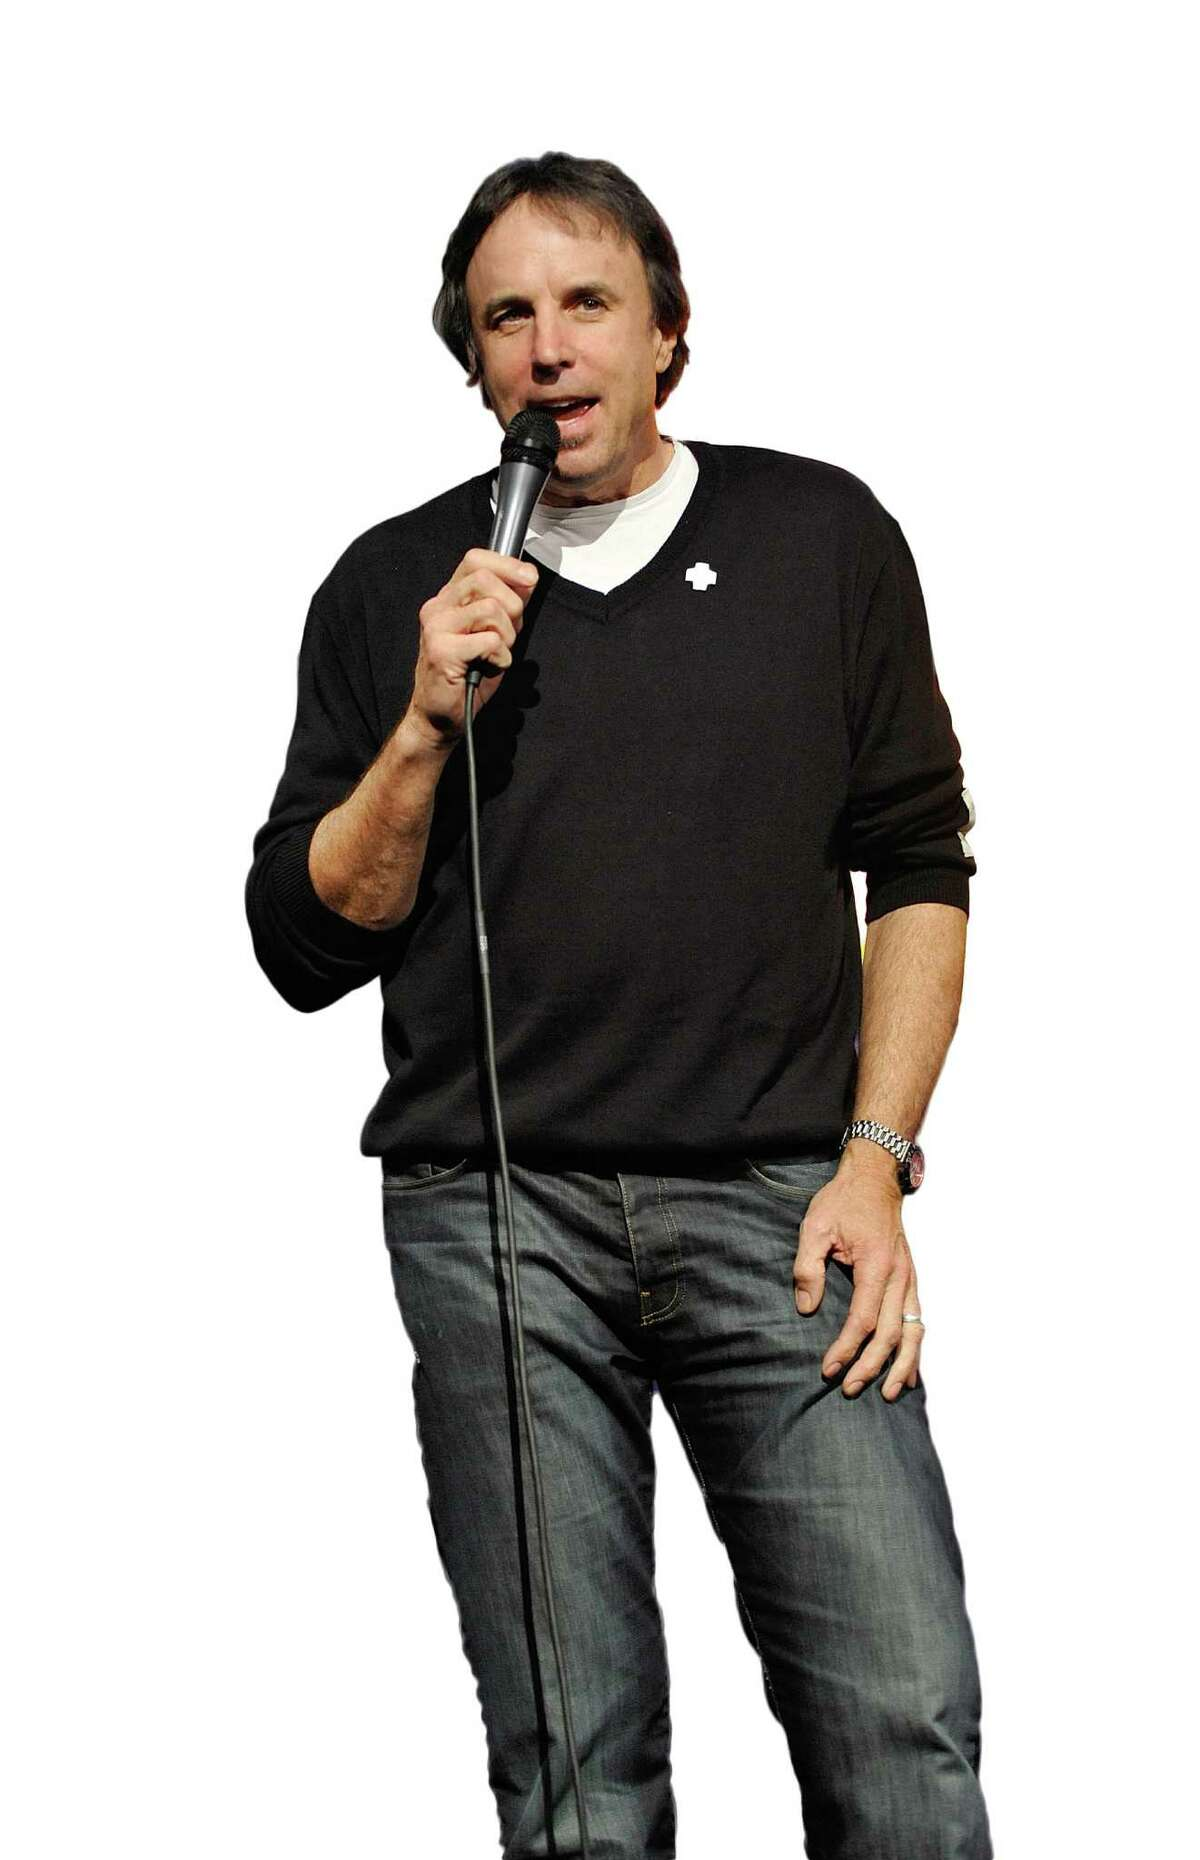 Kevin Nealon, Oct. 17-18, Laugh Out Loud Comedy Club